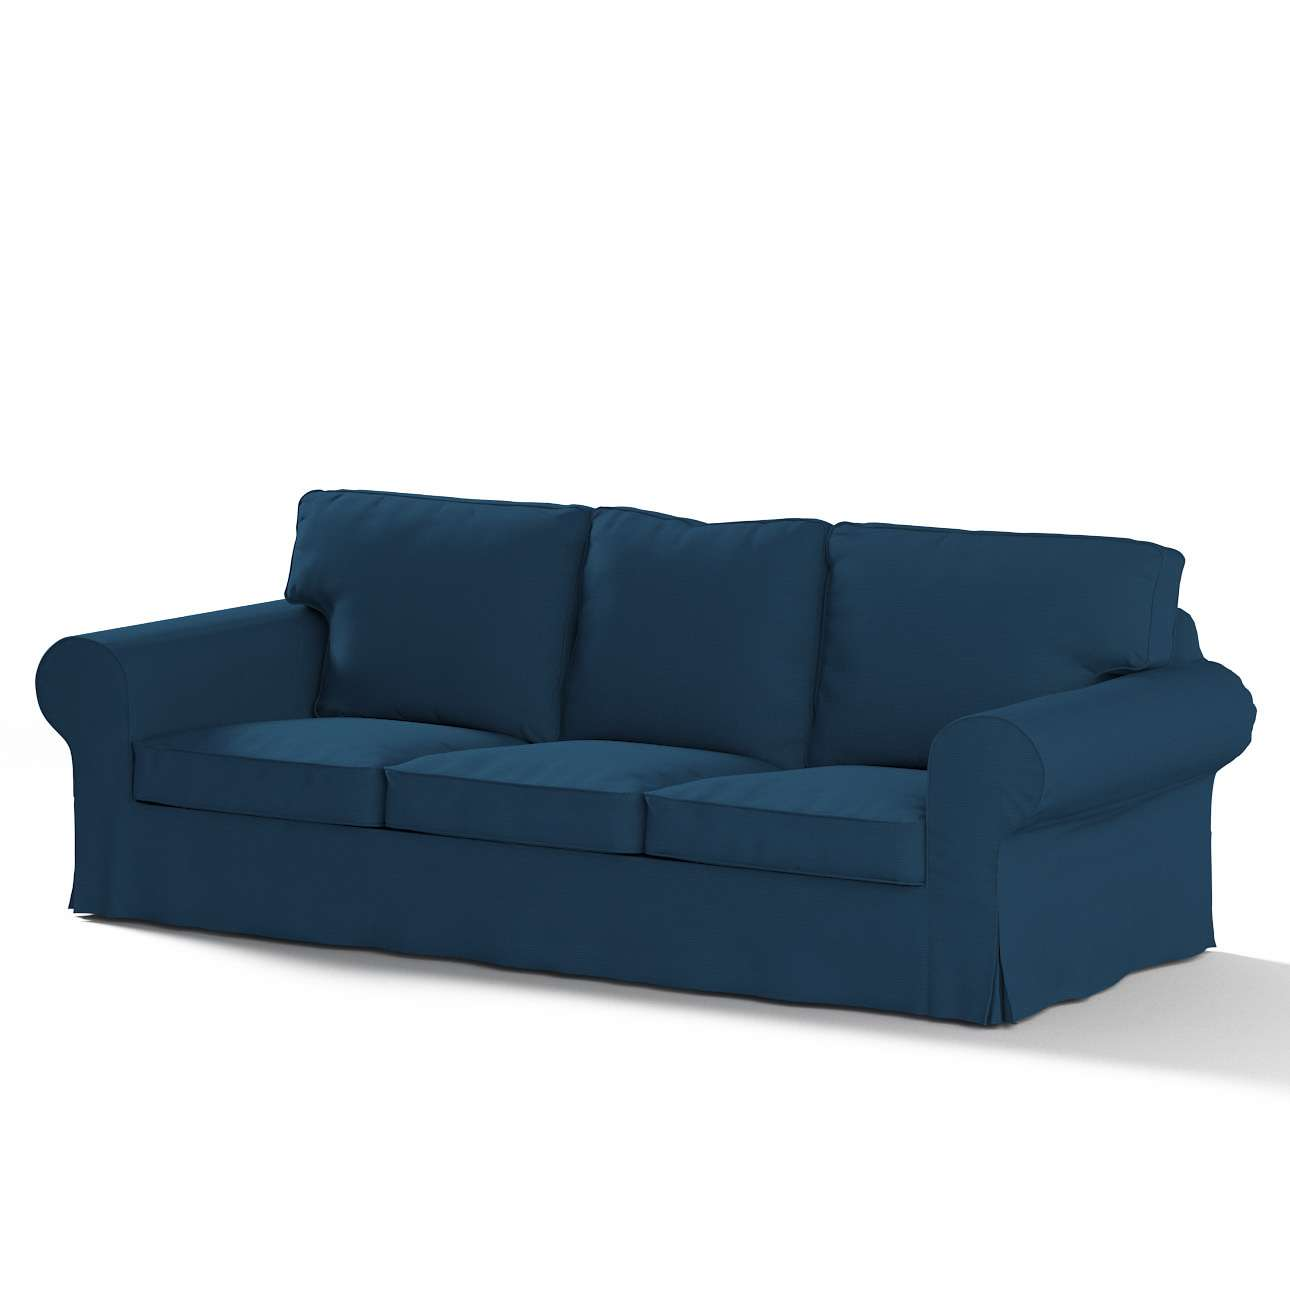 Ektorp 3 Seater Sofa Bed Cover For Model On Sale In Ikea 2004